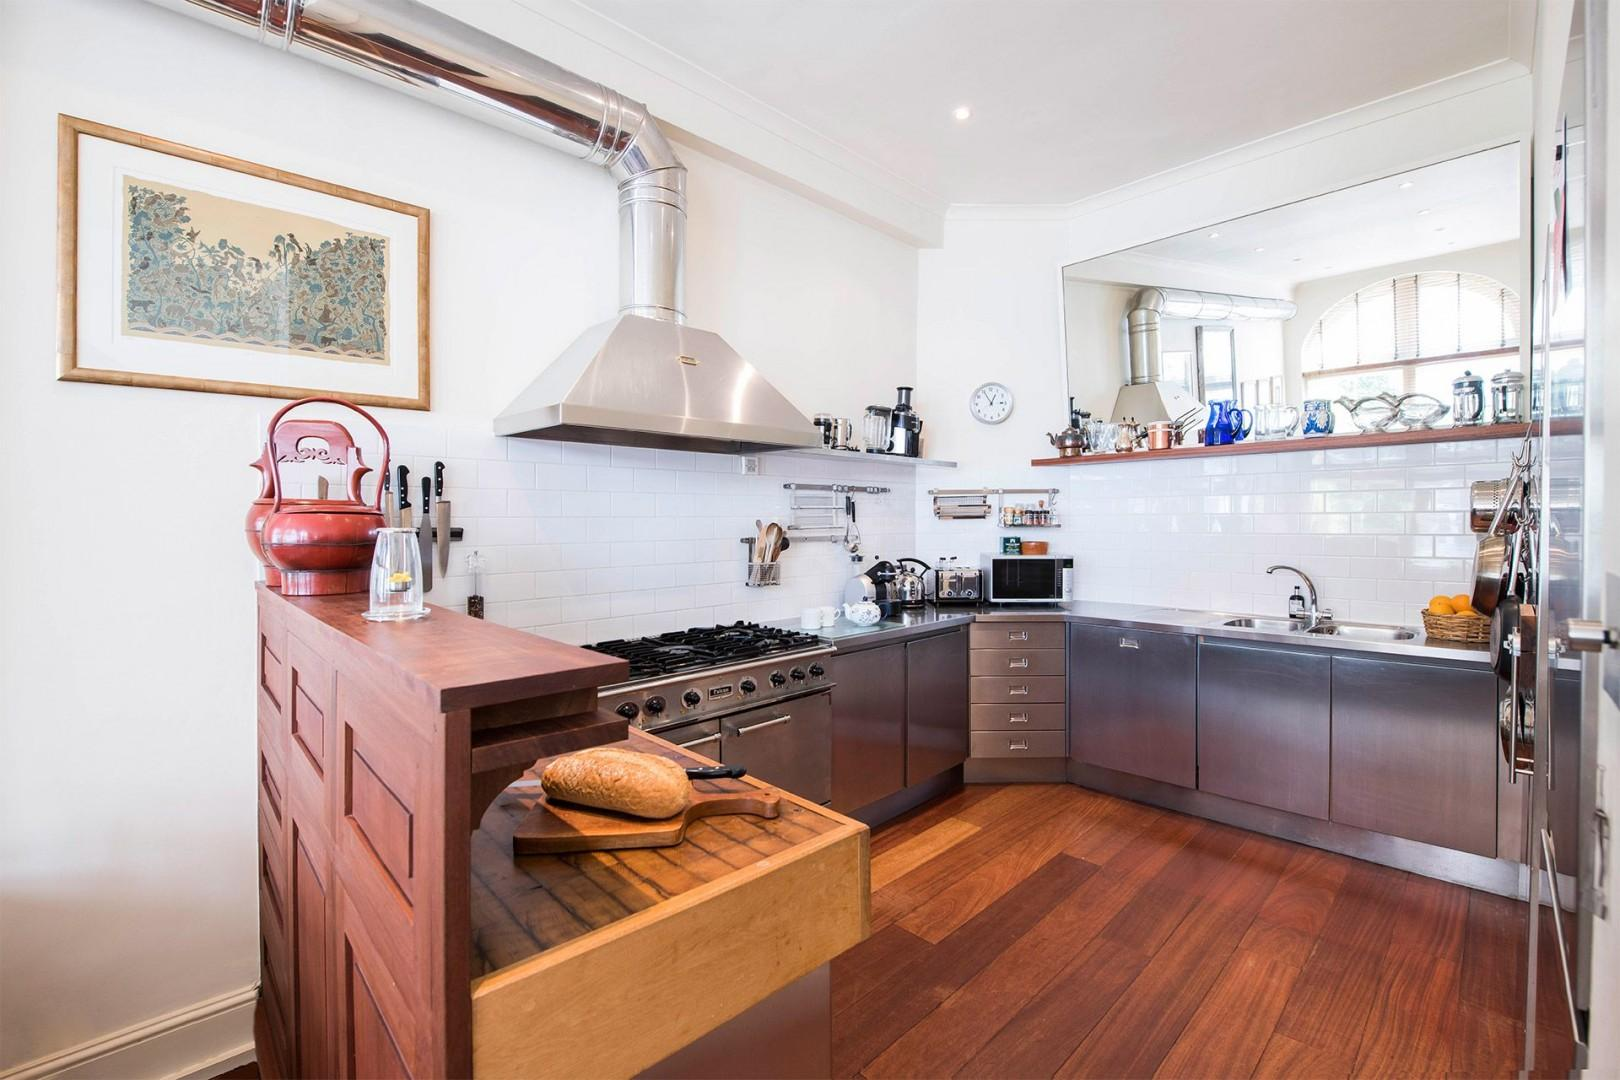 Modern kitchen equipped with everything you need to cook at home